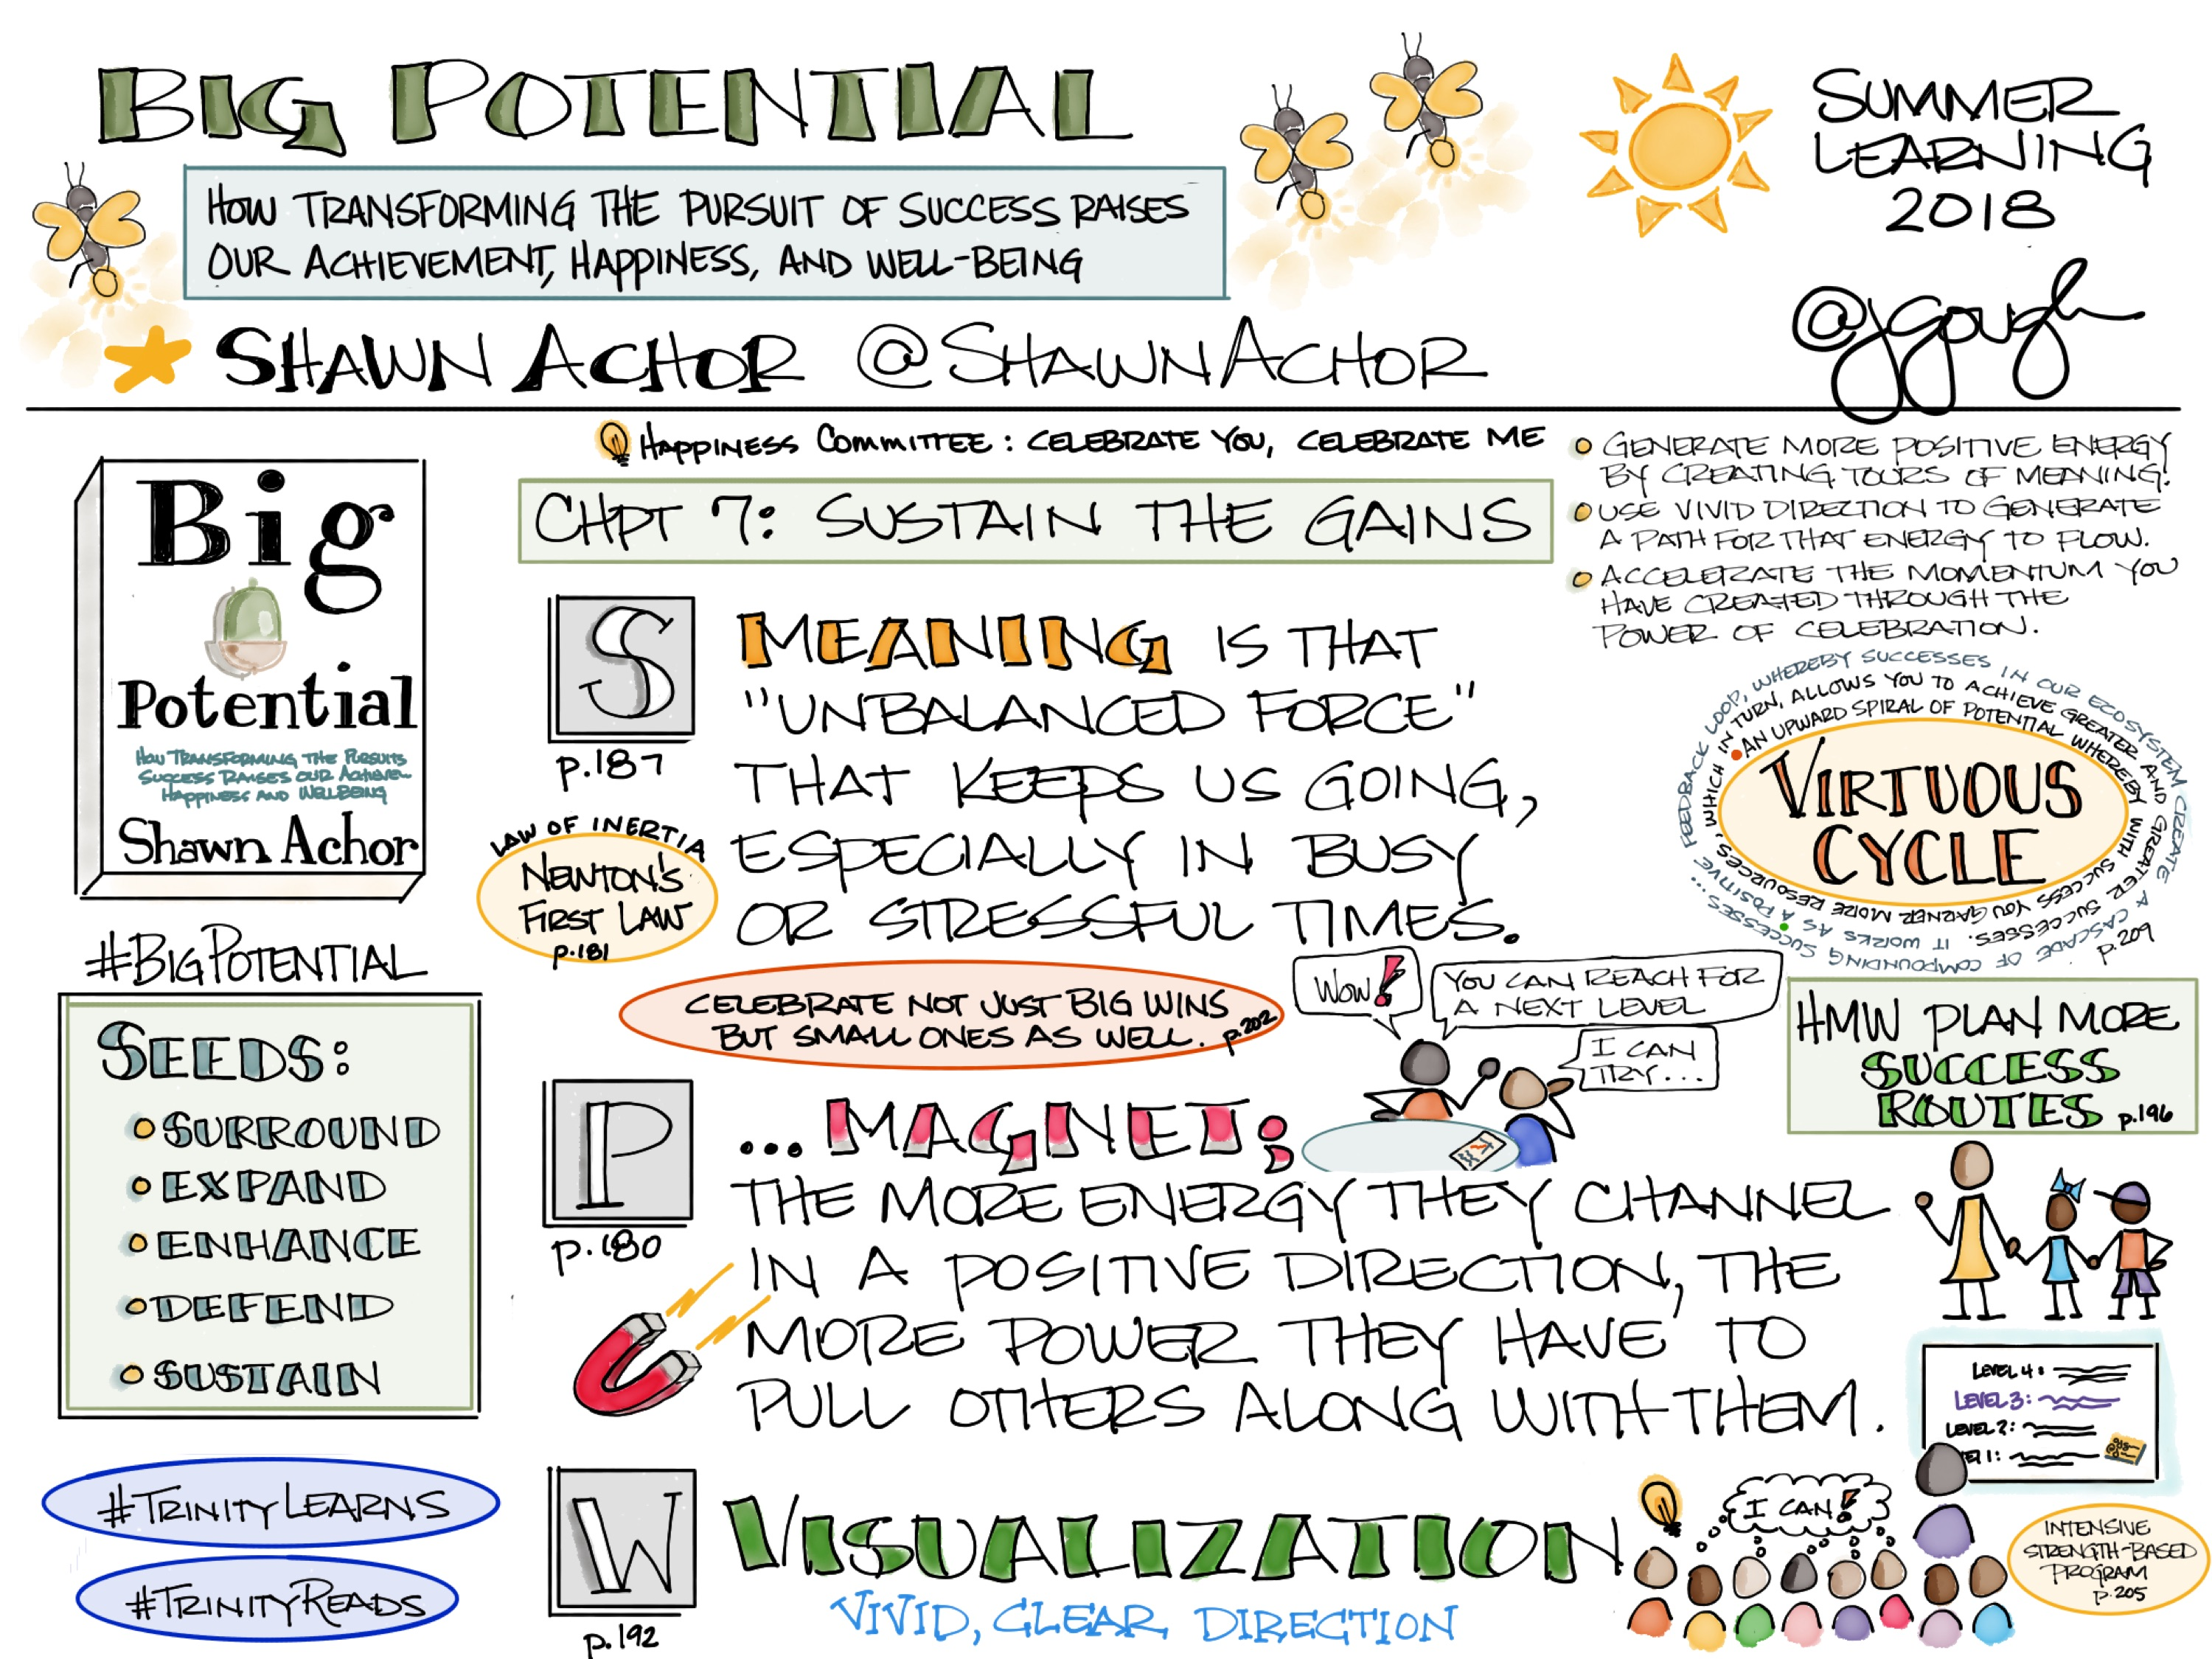 #BigPotential by @ShawnAchor Chapter 7: SUSTAIN the Gains – #TrinityLearns meaning, magnetism, visualization, plan more success routes #TrinityReads